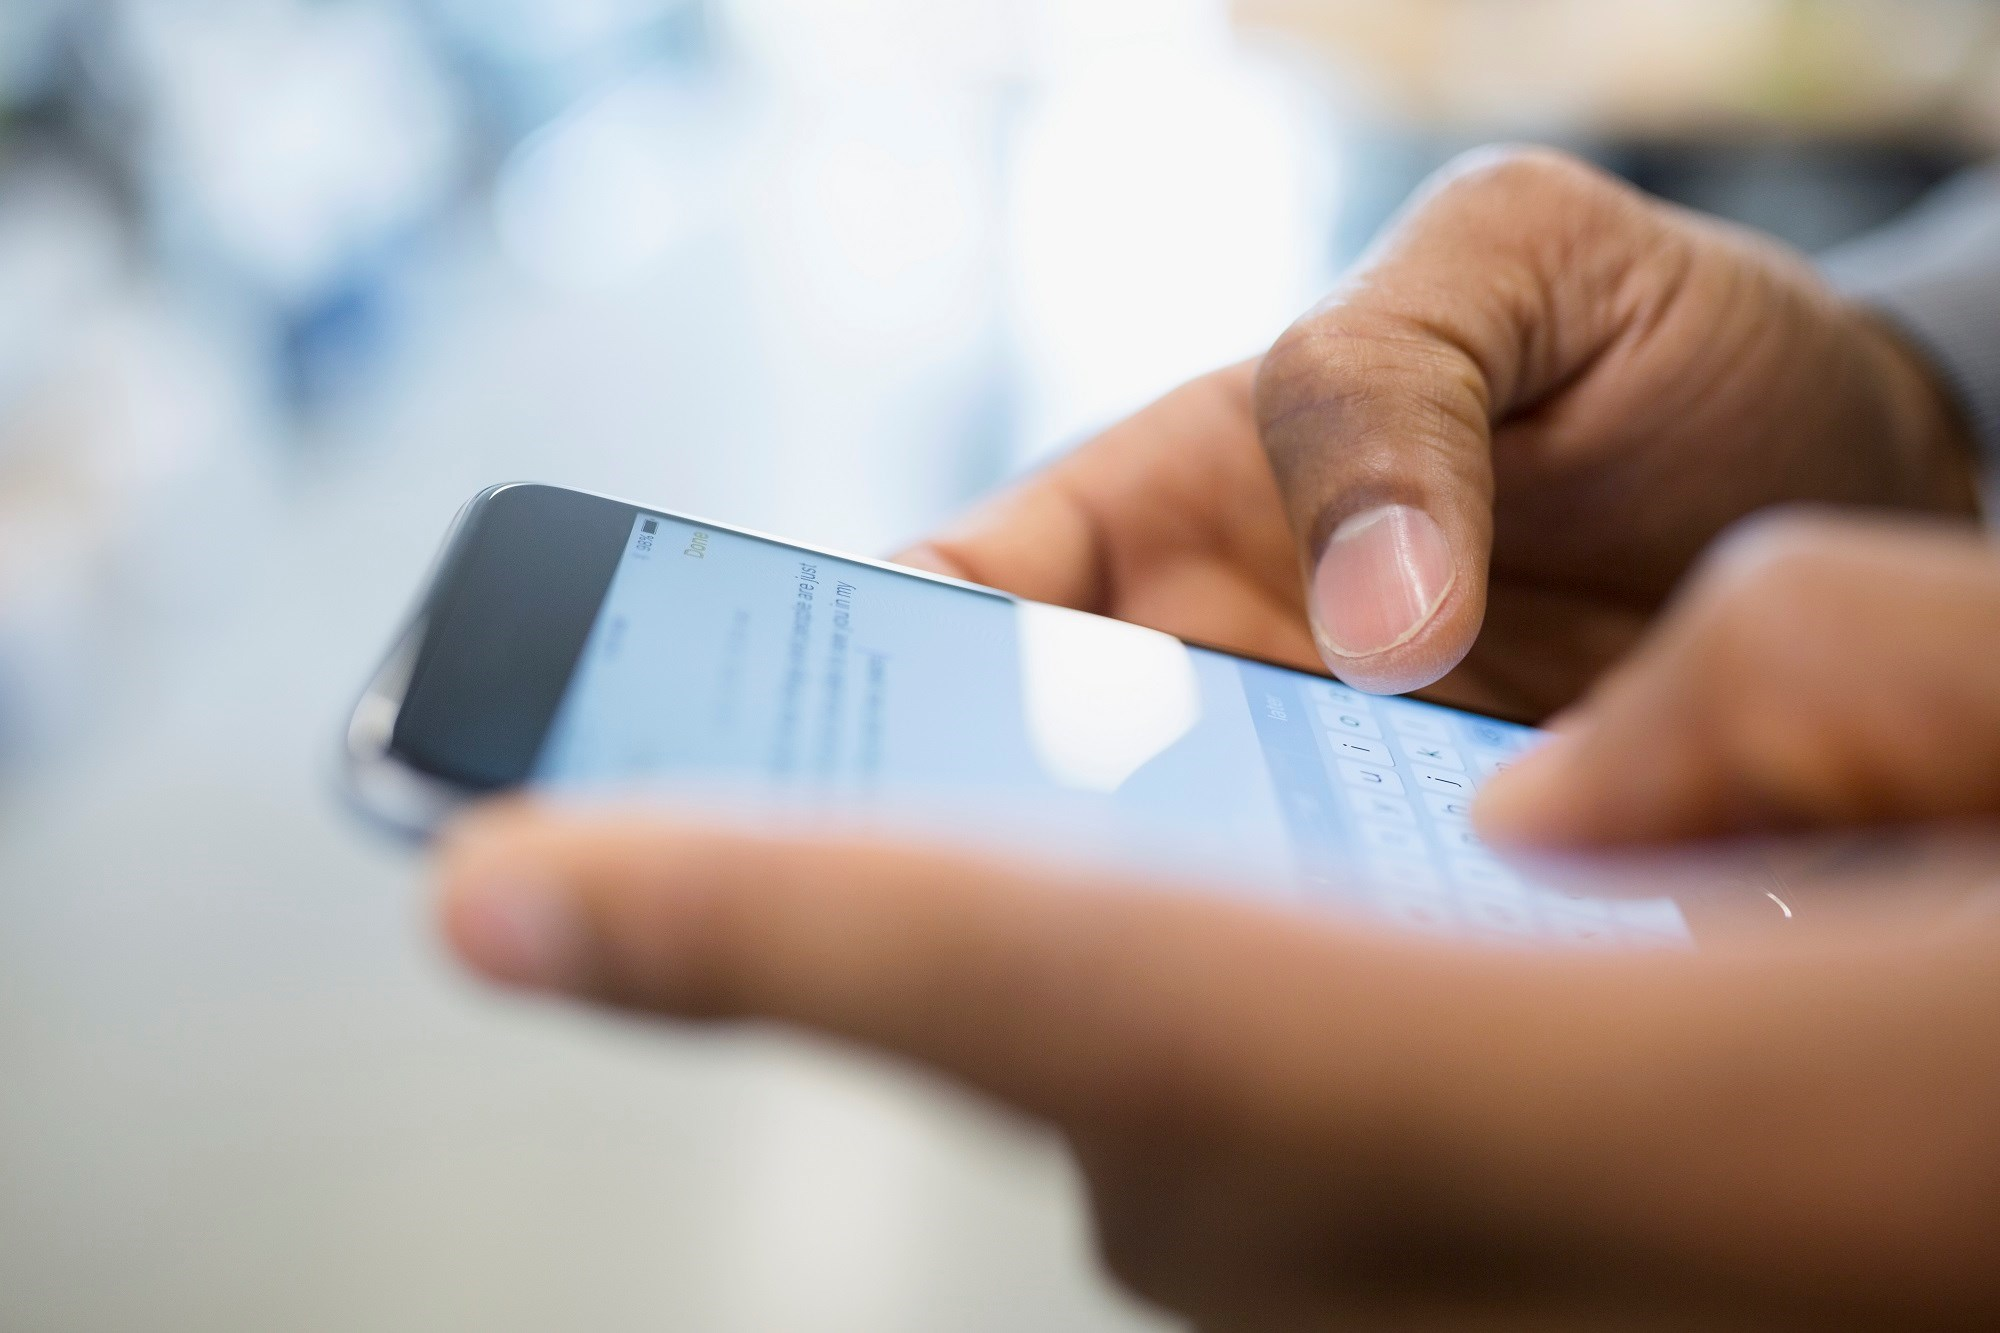 Not All Patients Prefer Delivery of STI/HIV Screening Results Via SMS